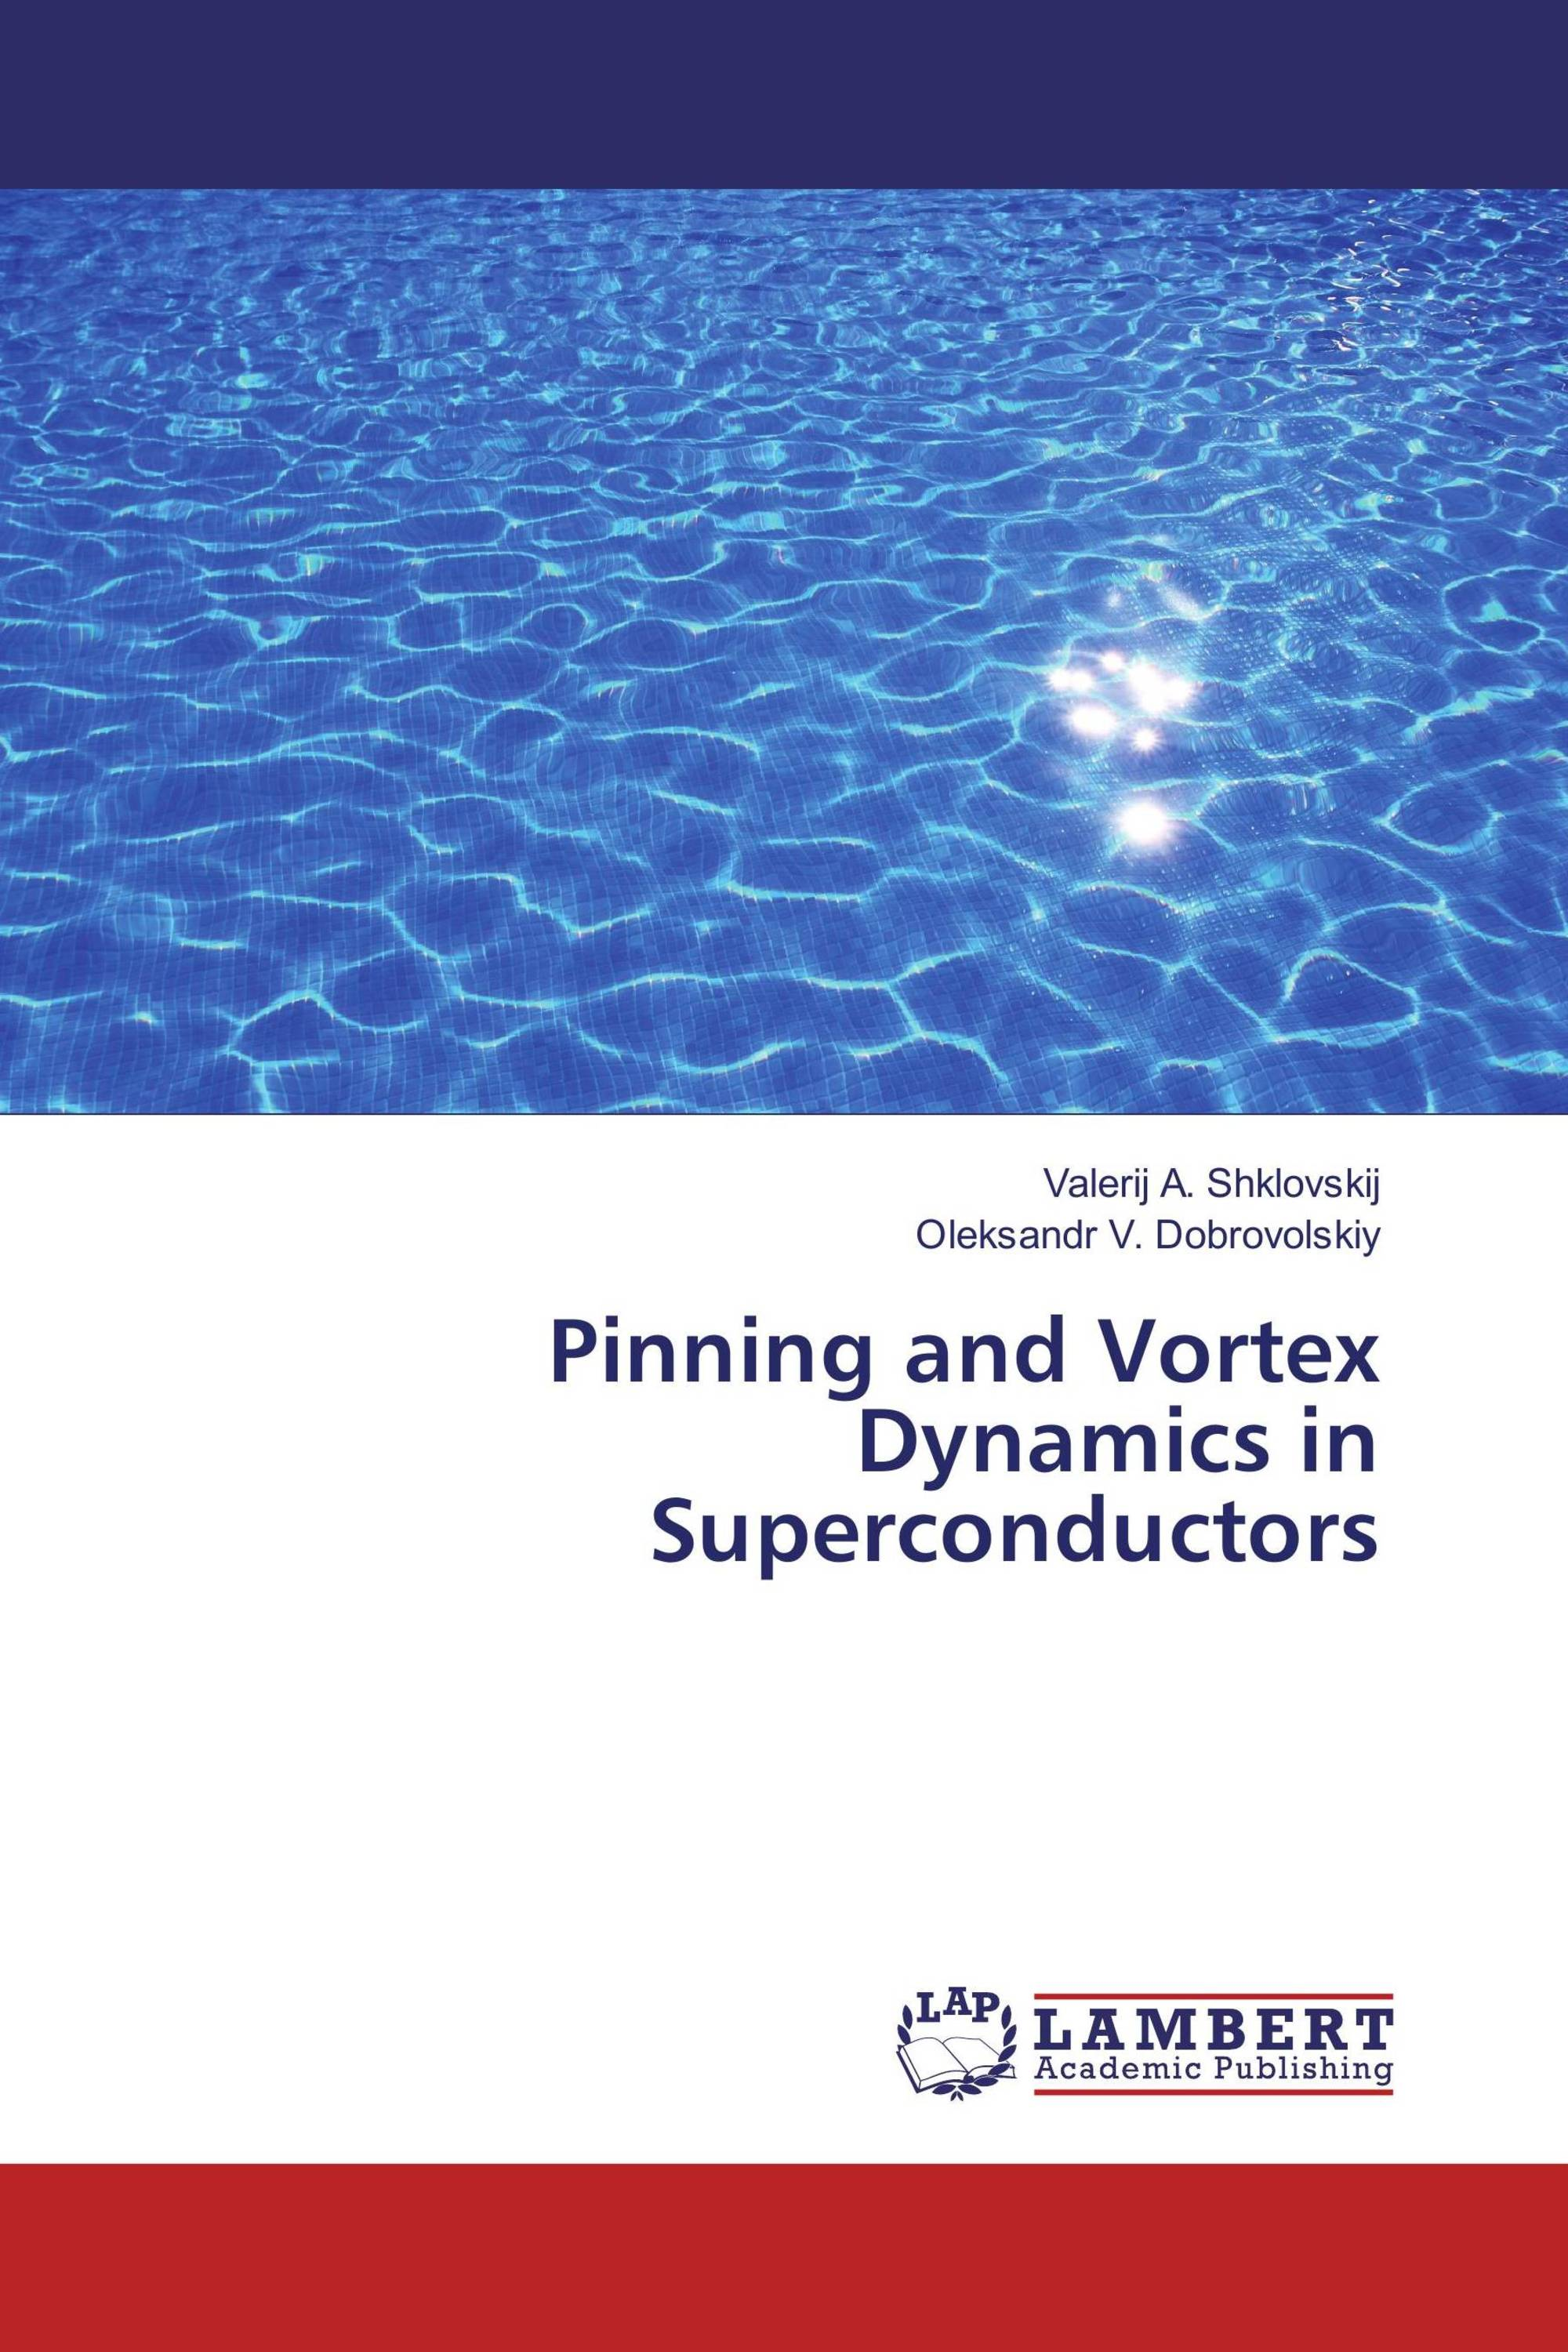 Pinning and Vortex Dynamics in Superconductors